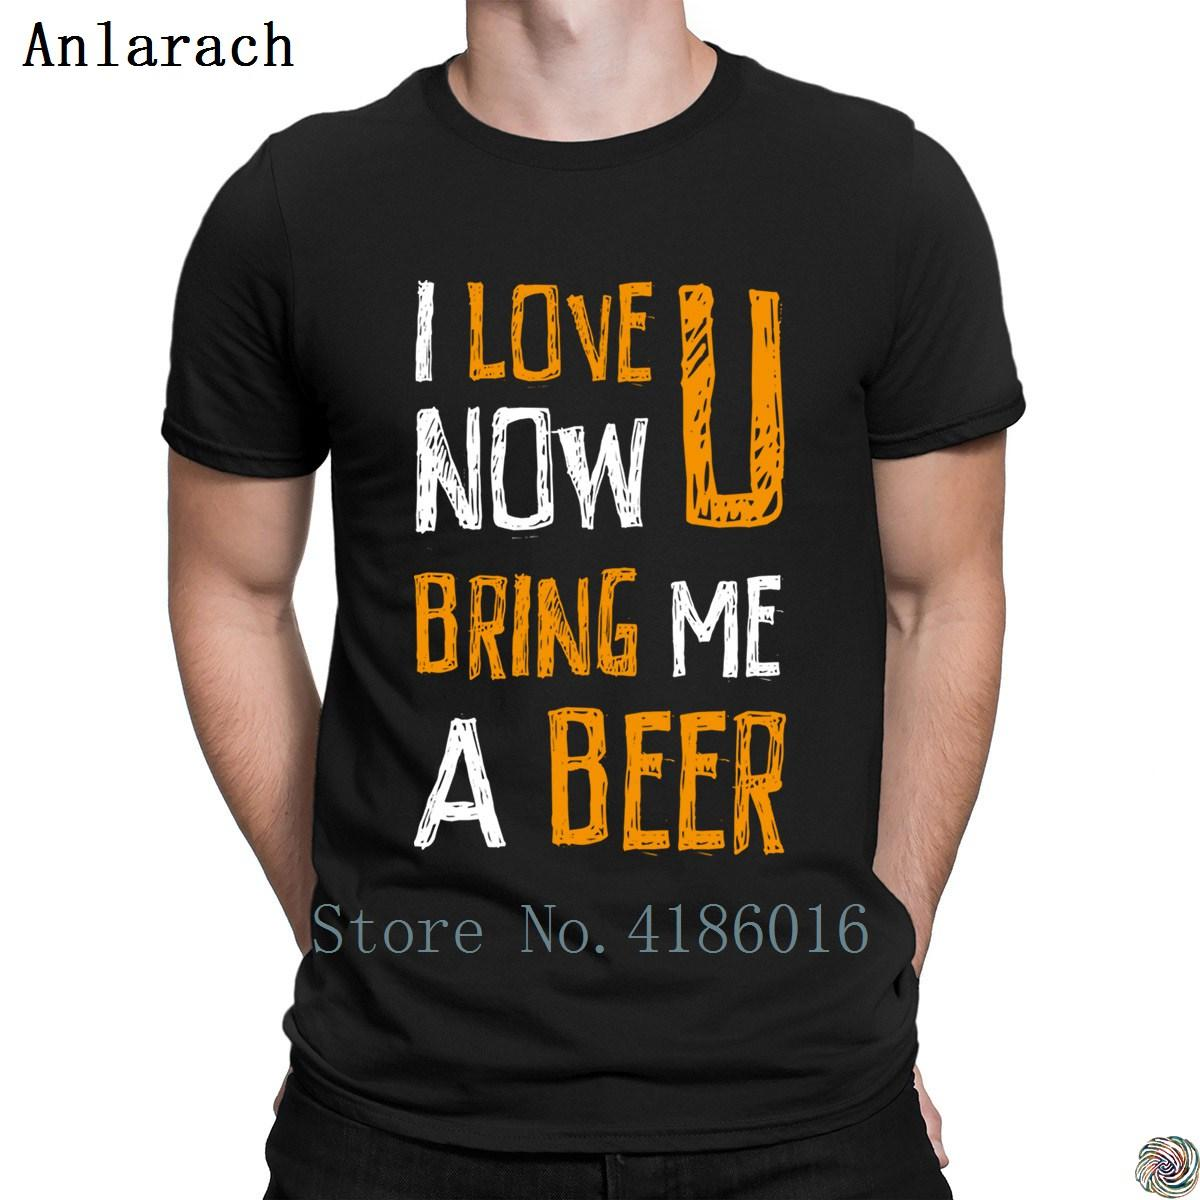 I love you now bring me a Beer tshirt Natural funky male summer t shirt for men Top Quality Print New Arrival Anlarach